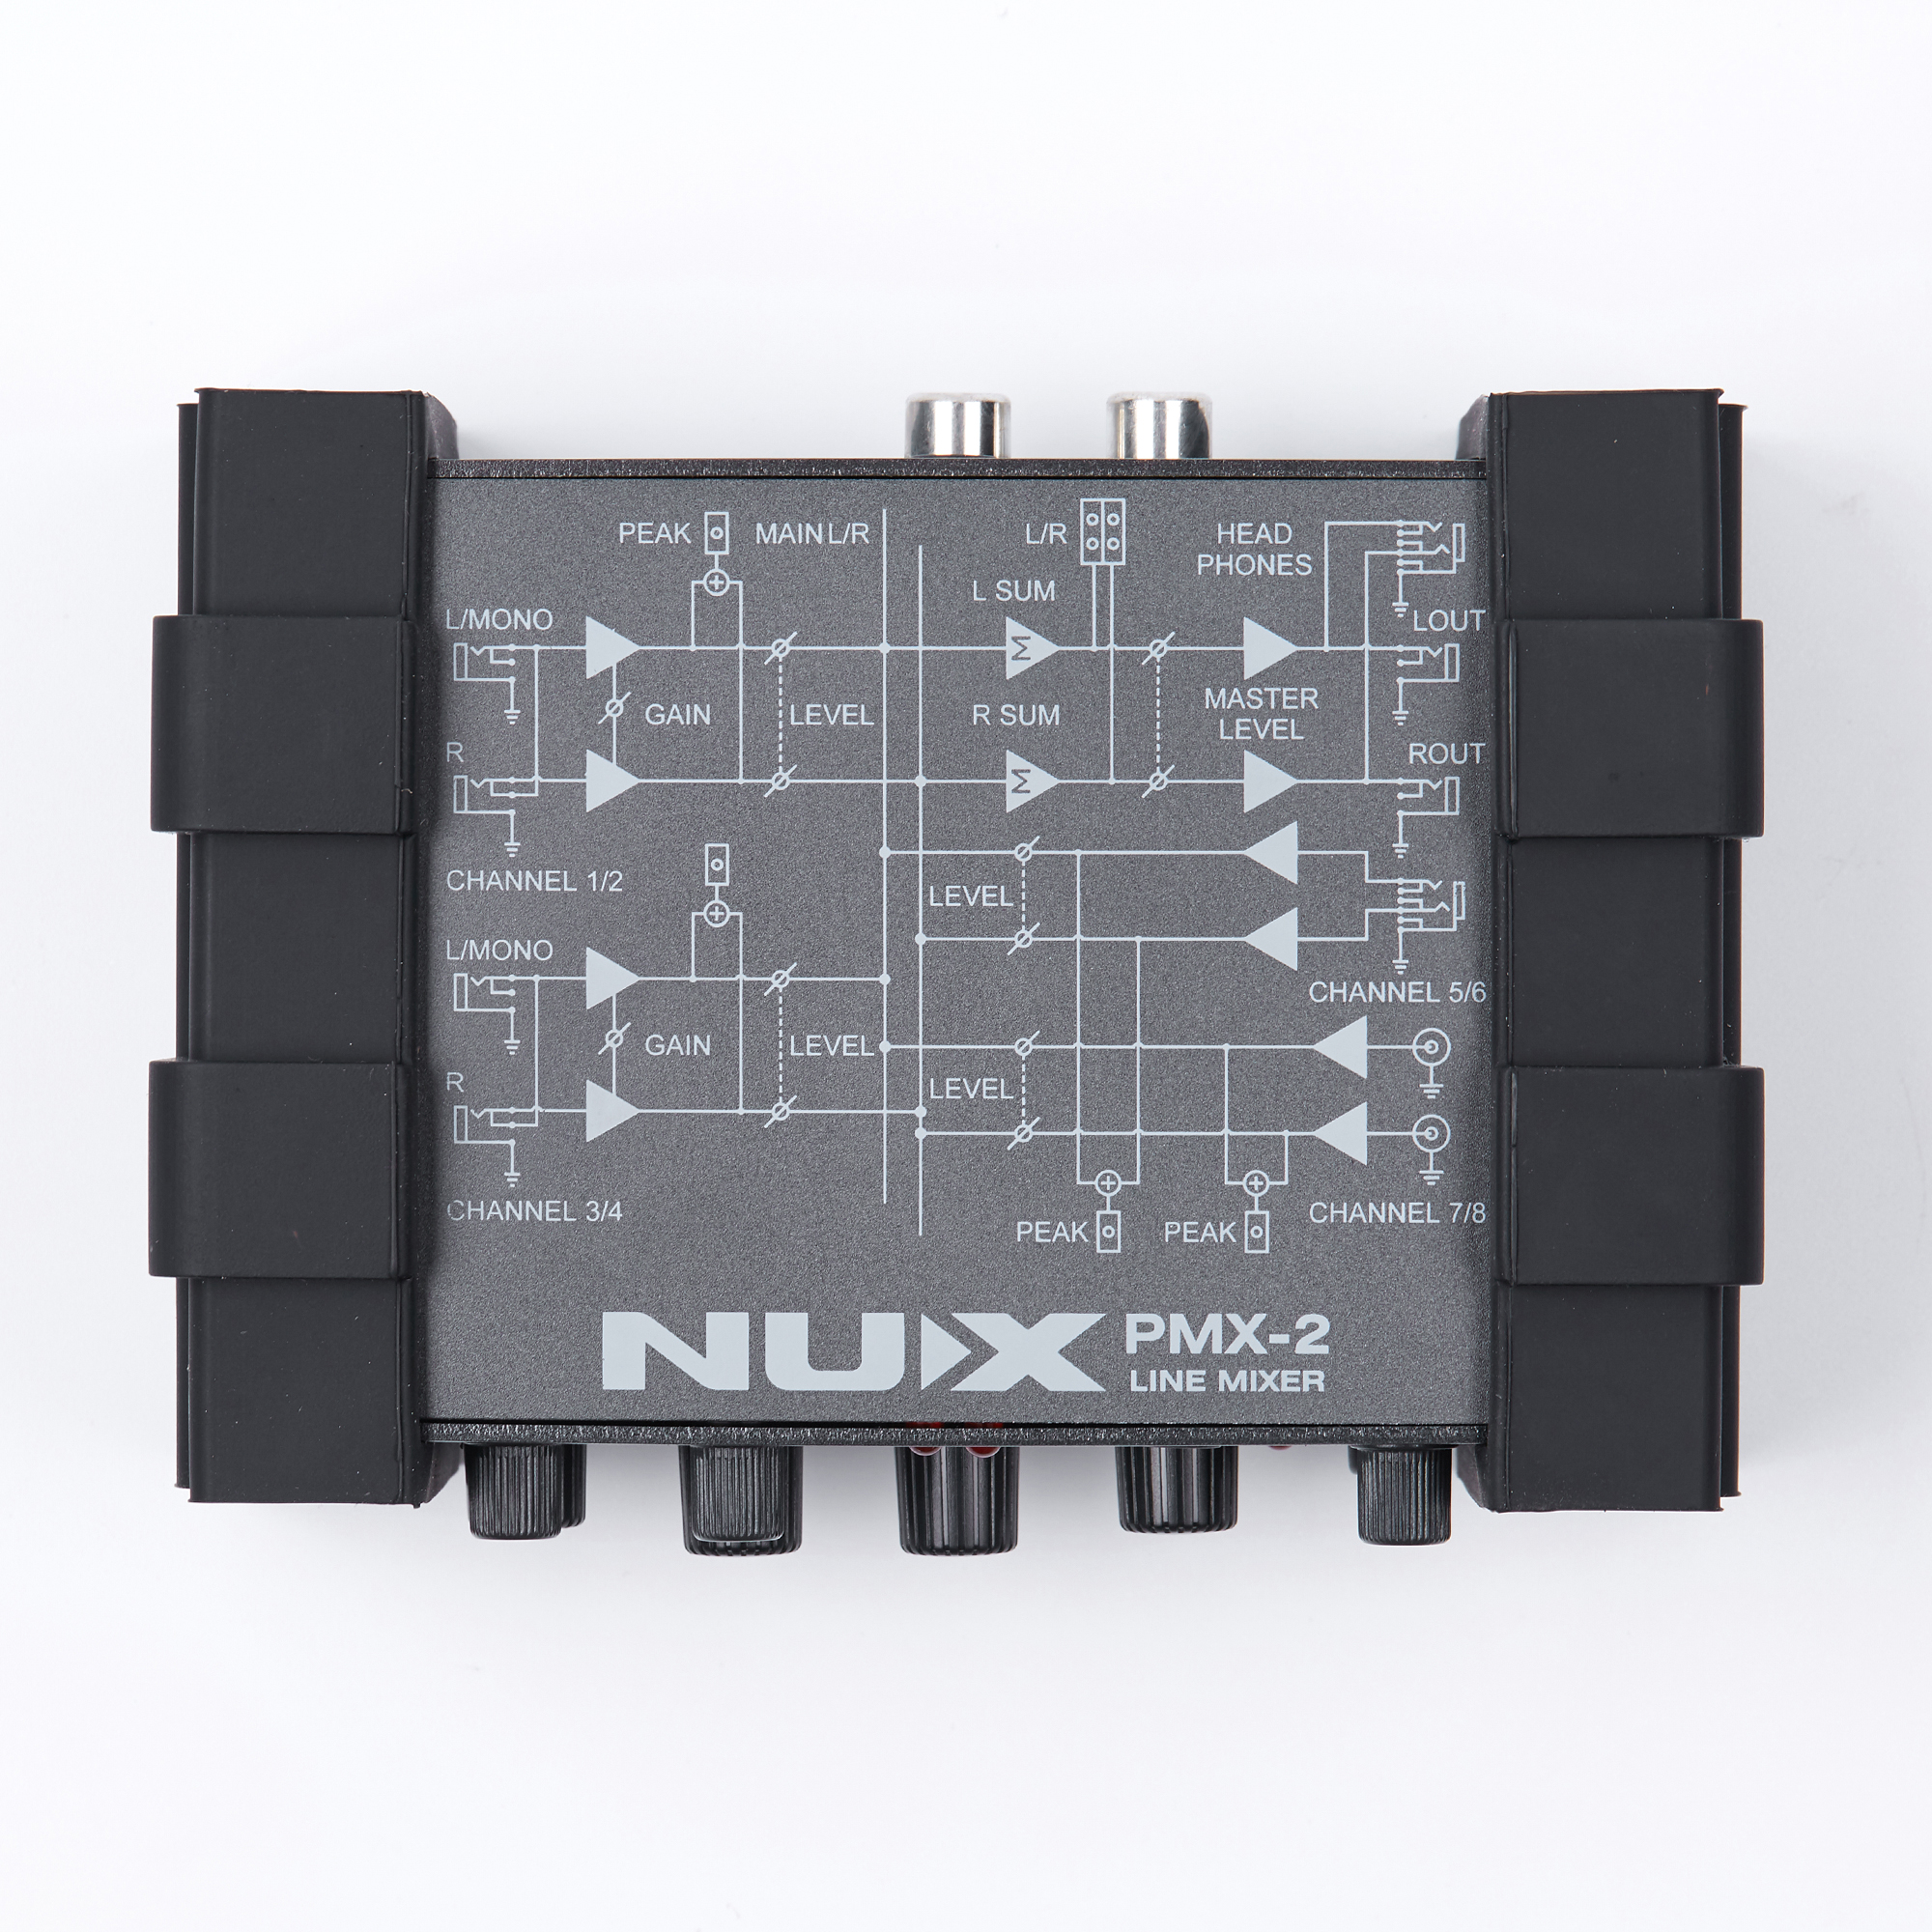 Gain Control 8 Inputs and 2 Outputs NUX PMX-2 Multi-Channel Mini Mixer 30 Musical Instruments Accessories for Guitar Bass Player river of tomorrow